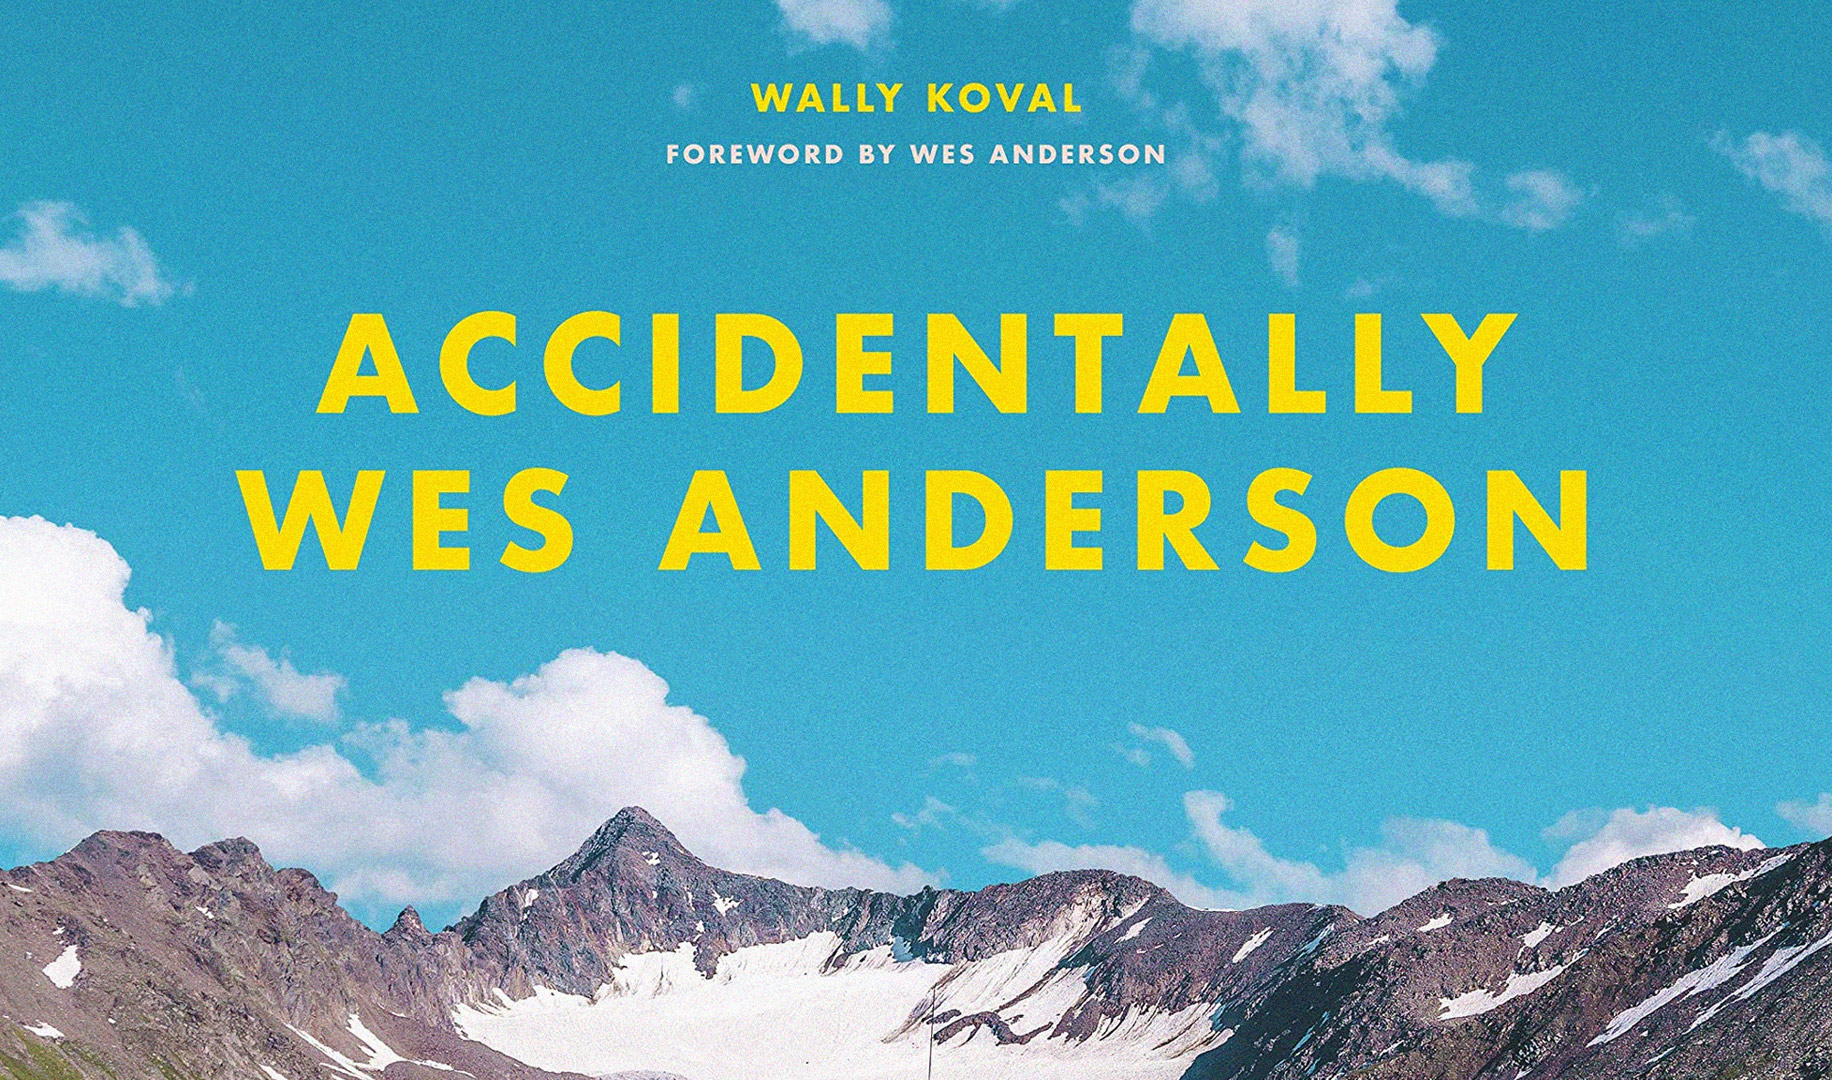 Amy shares her appreciation for the talented Wes Anderson, and gives us some insight into his wonderful world of work.